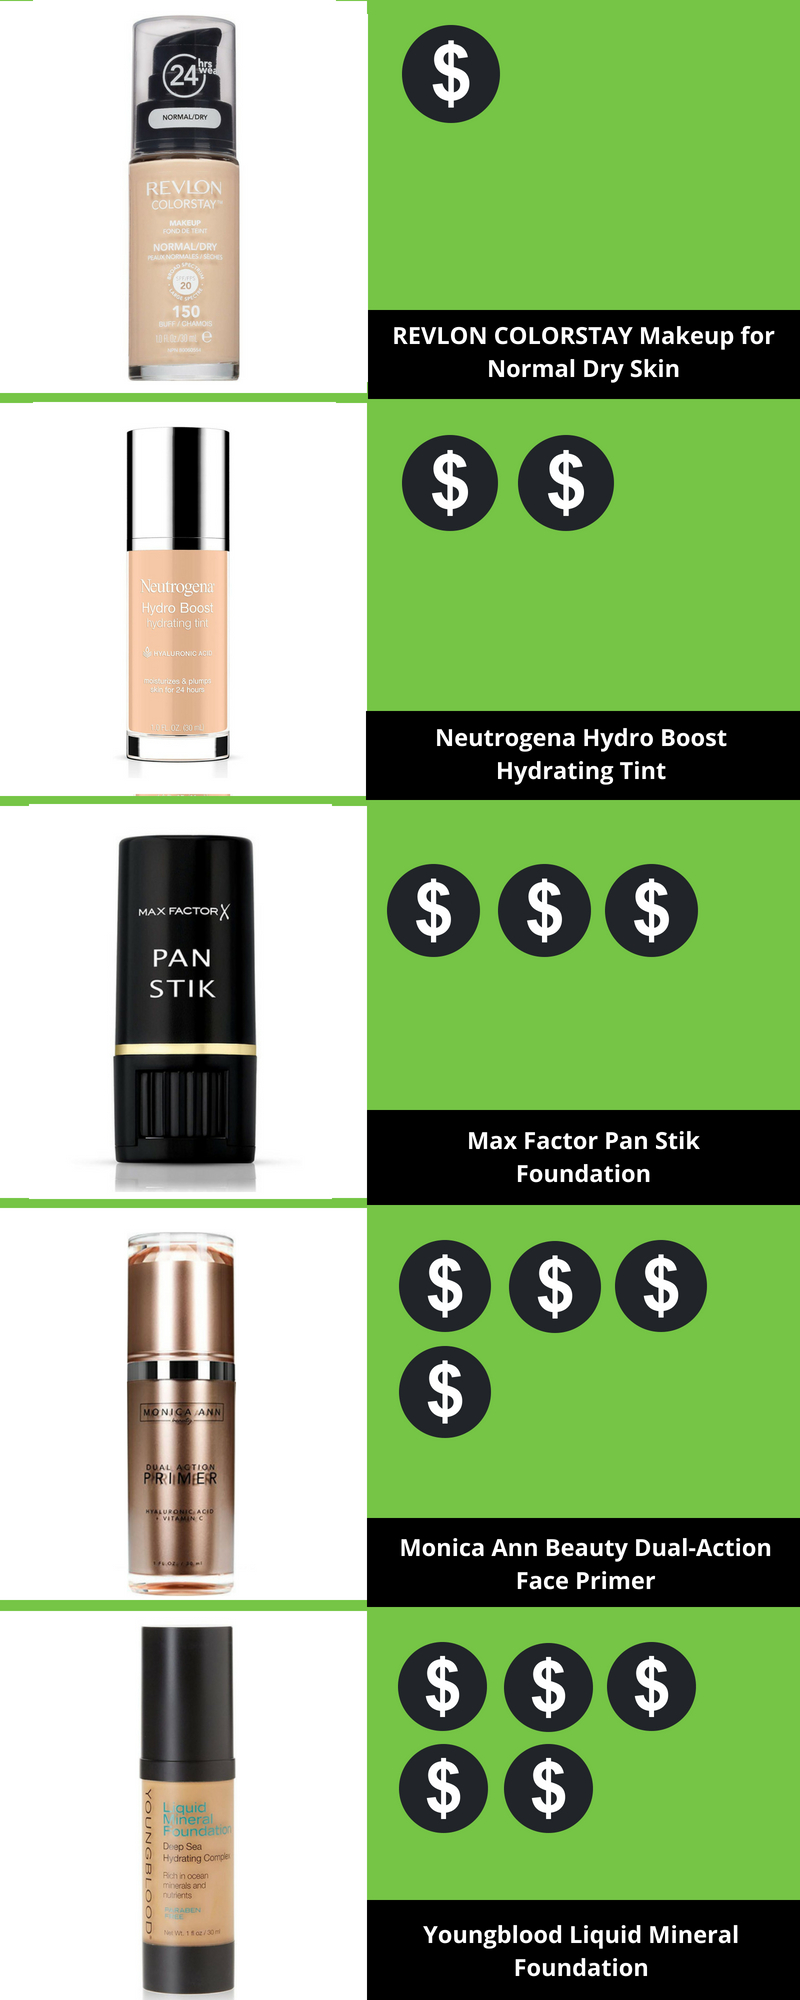 How Much Does Foundation for Dry Skin Cost - WITH TEXT